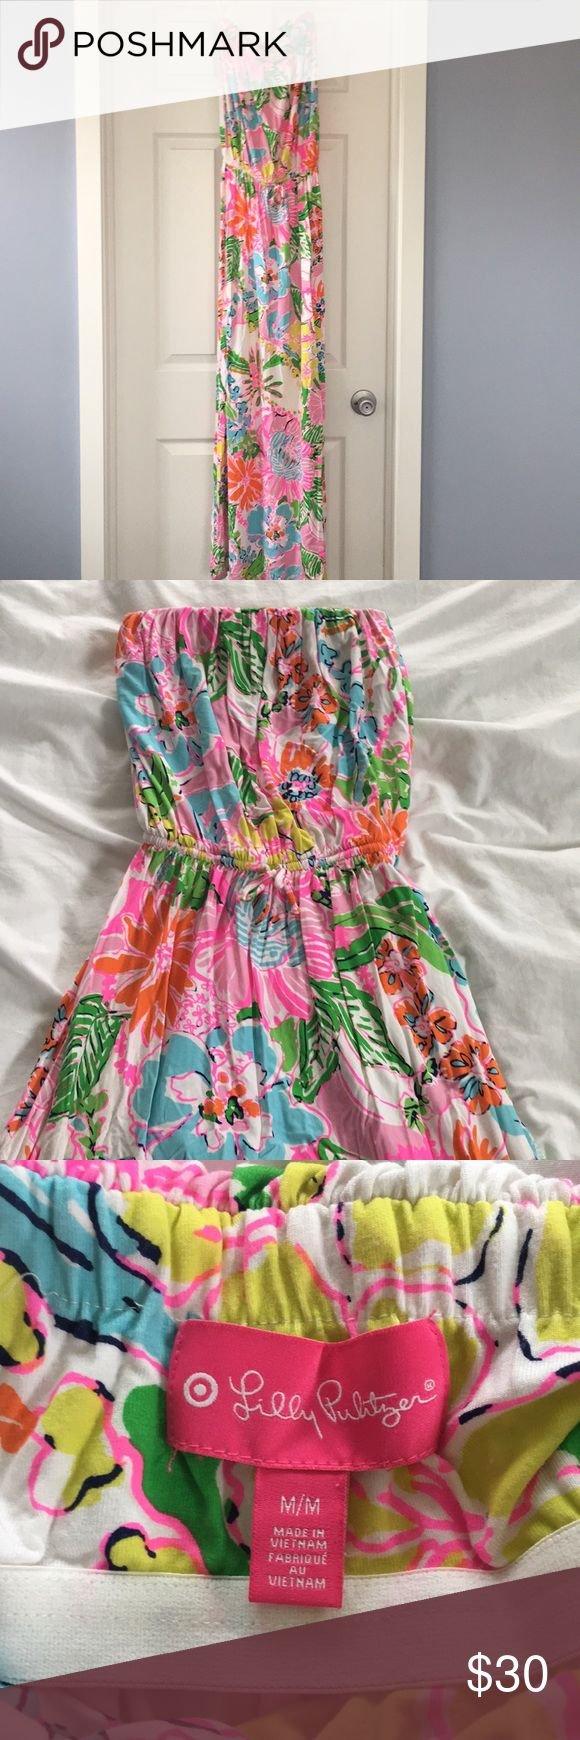 Lilly Pulitzer for Target Maxi Dress Lilly Pulitzer for Target maxi dress. Strapless with Elastic tie waist. Lilly Pulitzer for Target Dresses Maxi